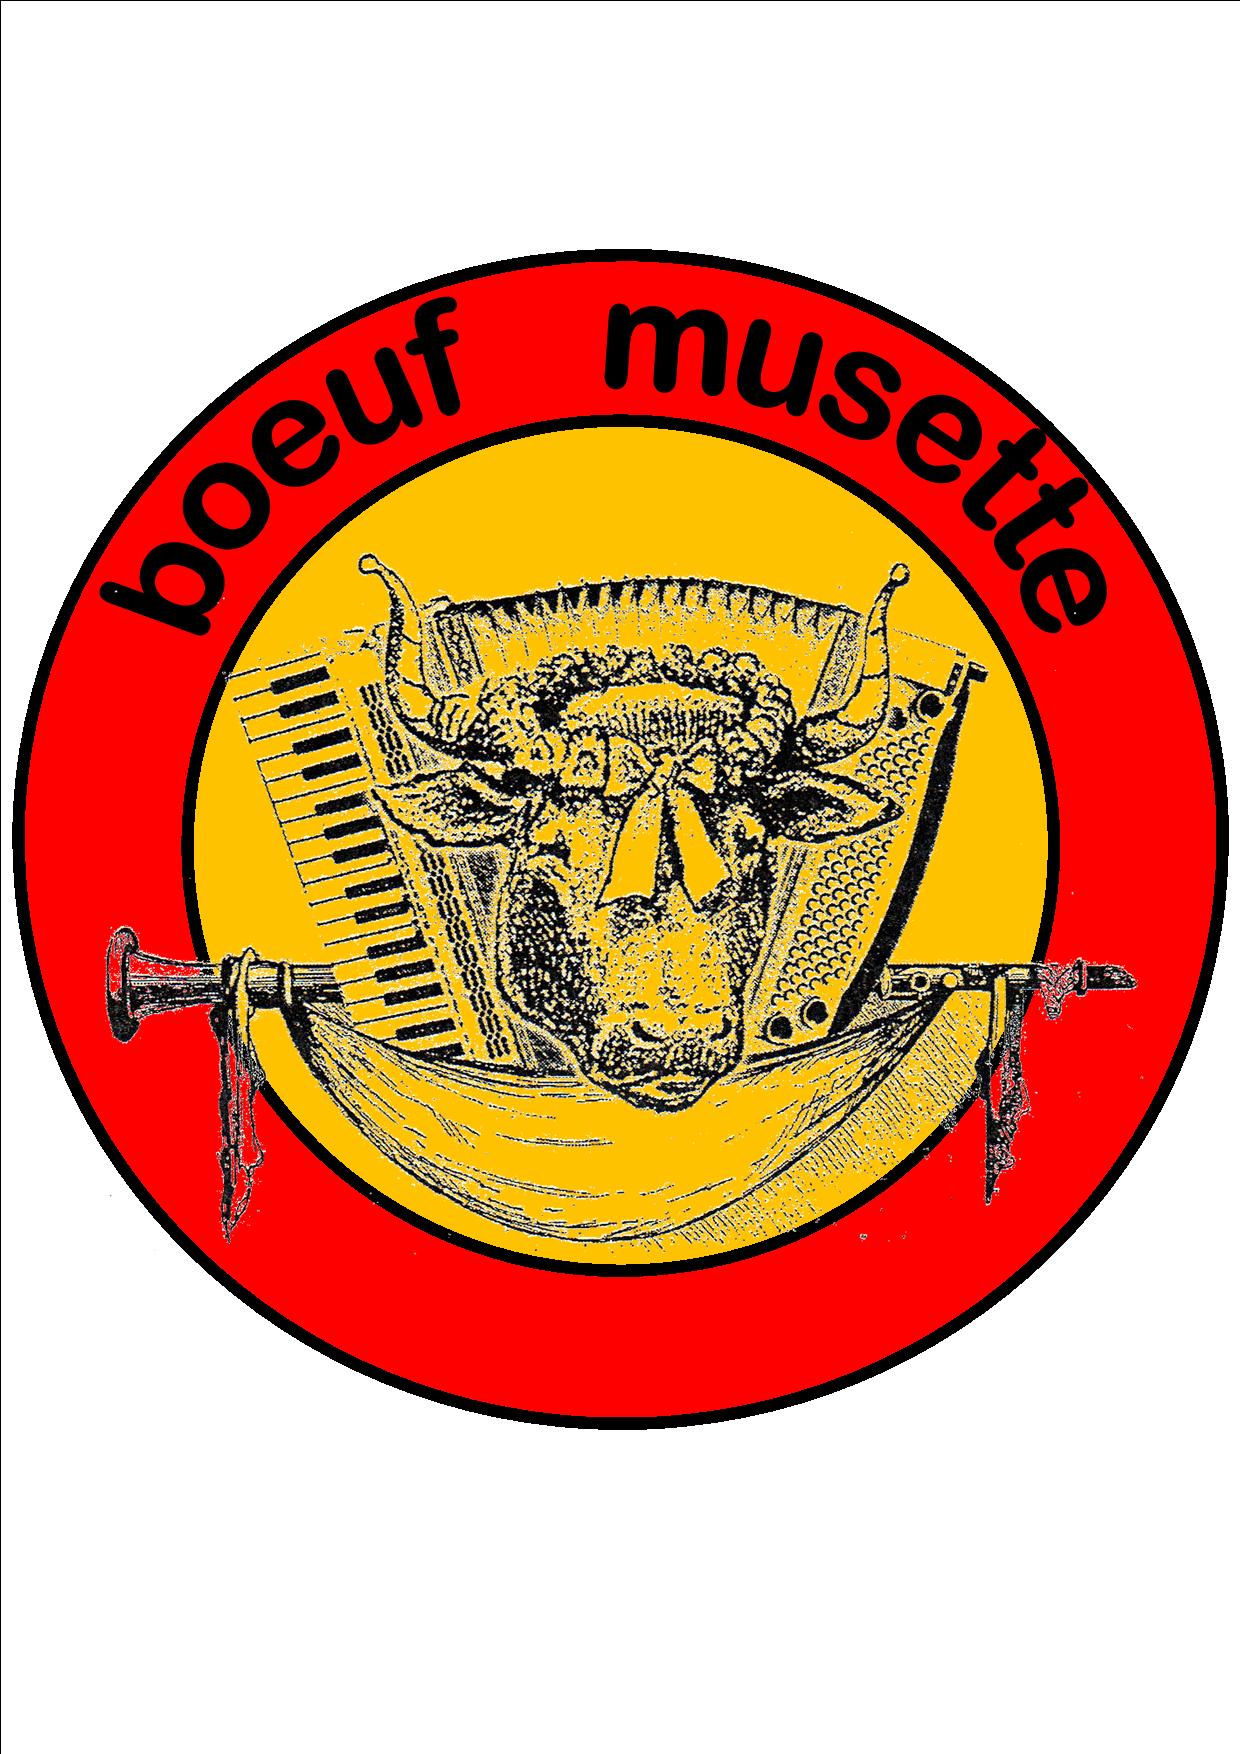 boeuf musette